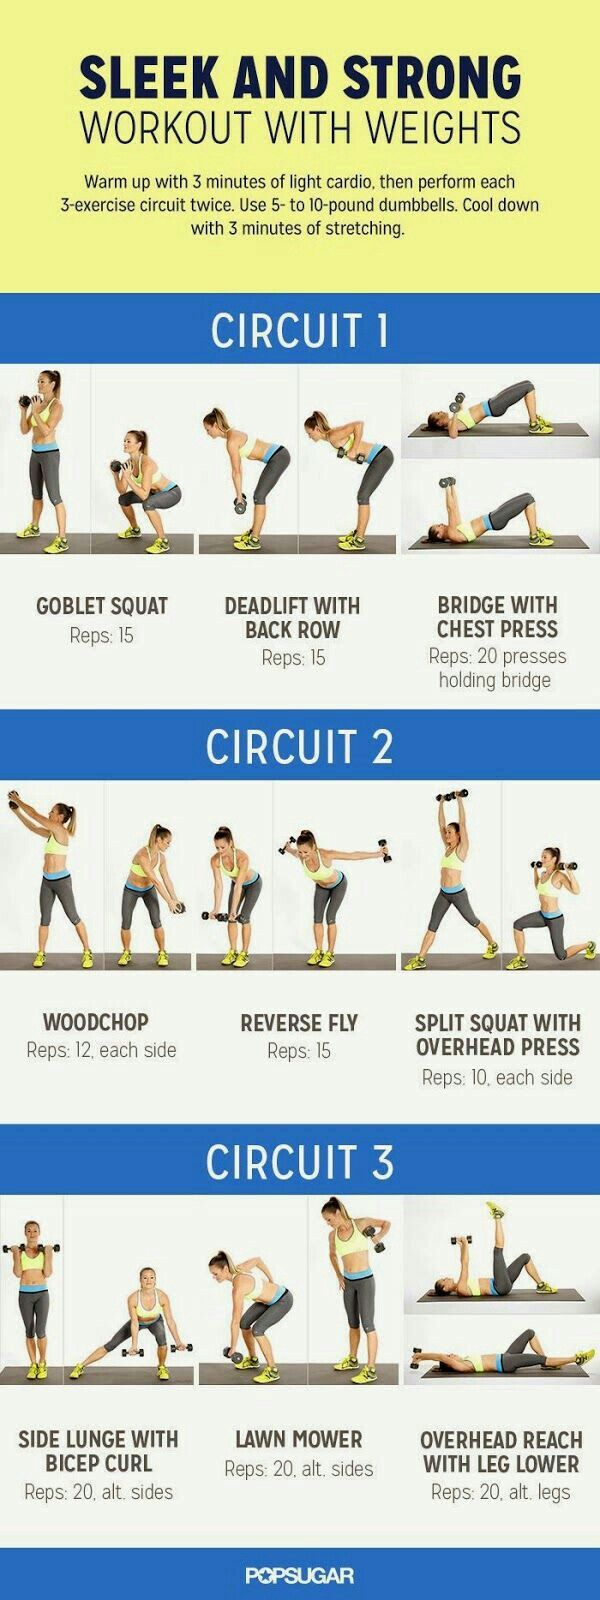 Pin By Doaa On Exercise